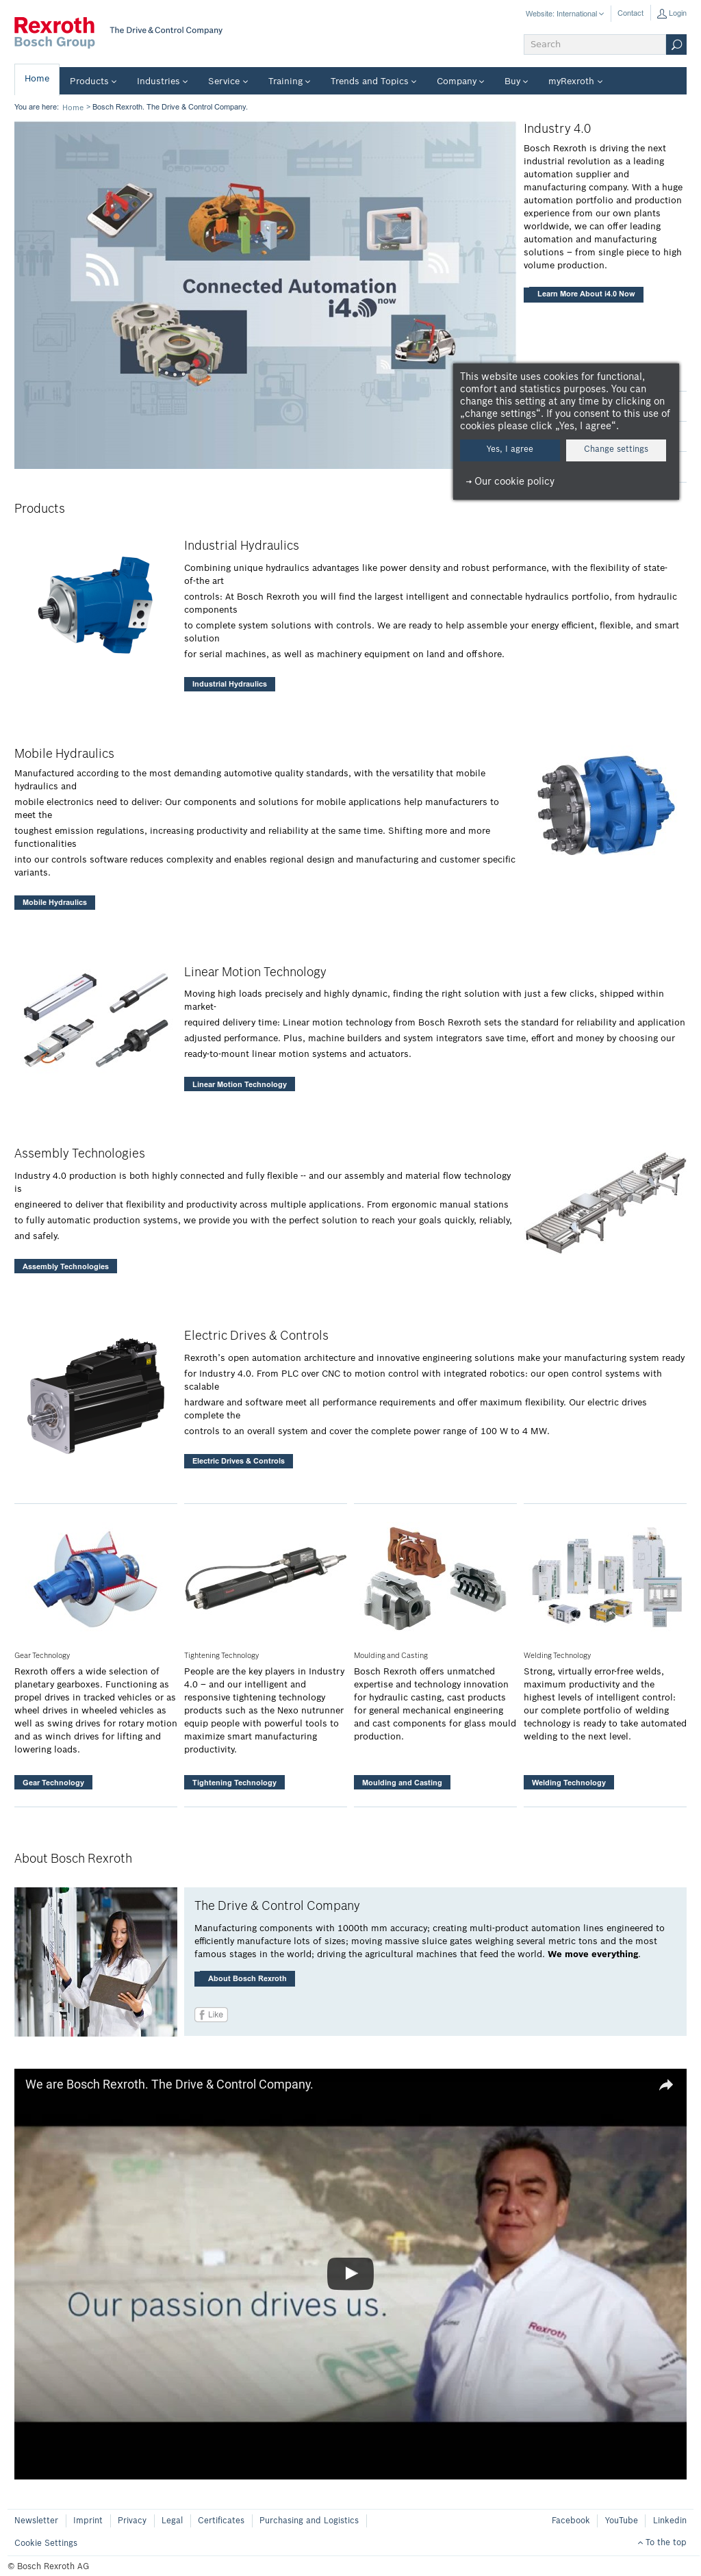 Bosch Rexroth Competitors, Revenue and Employees - Owler Company Profile